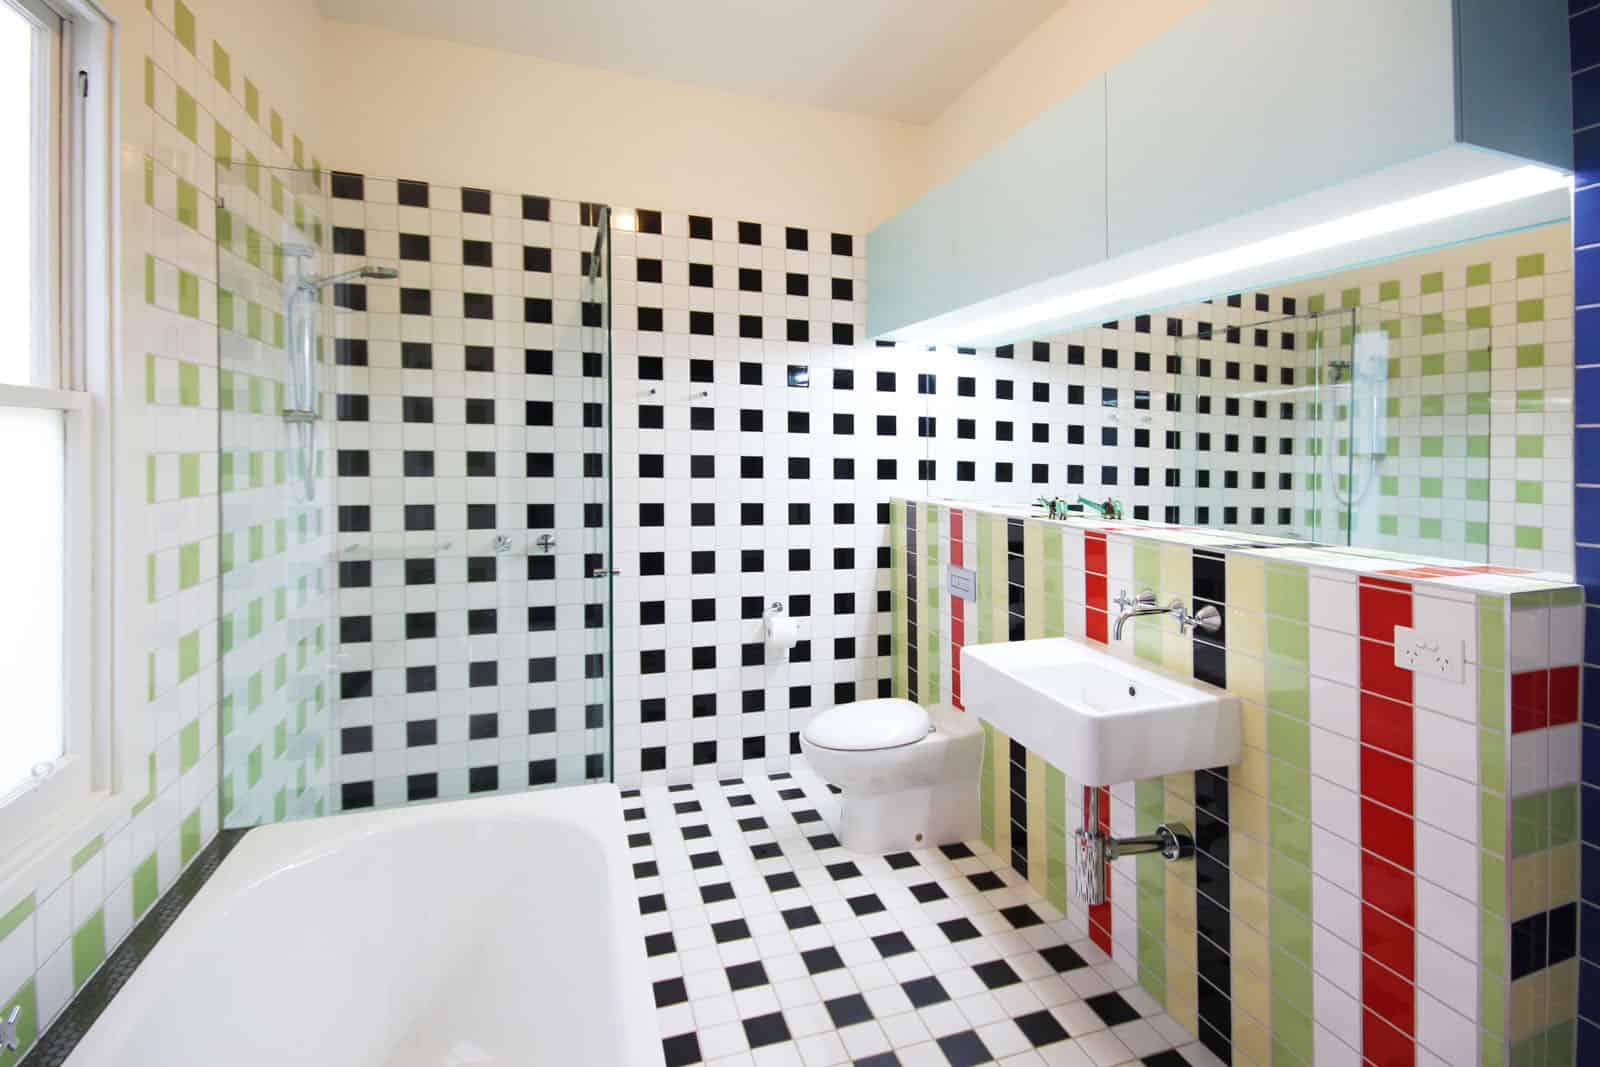 Tiles interior design johnson tiles interior design doublecrazyfo Image collections